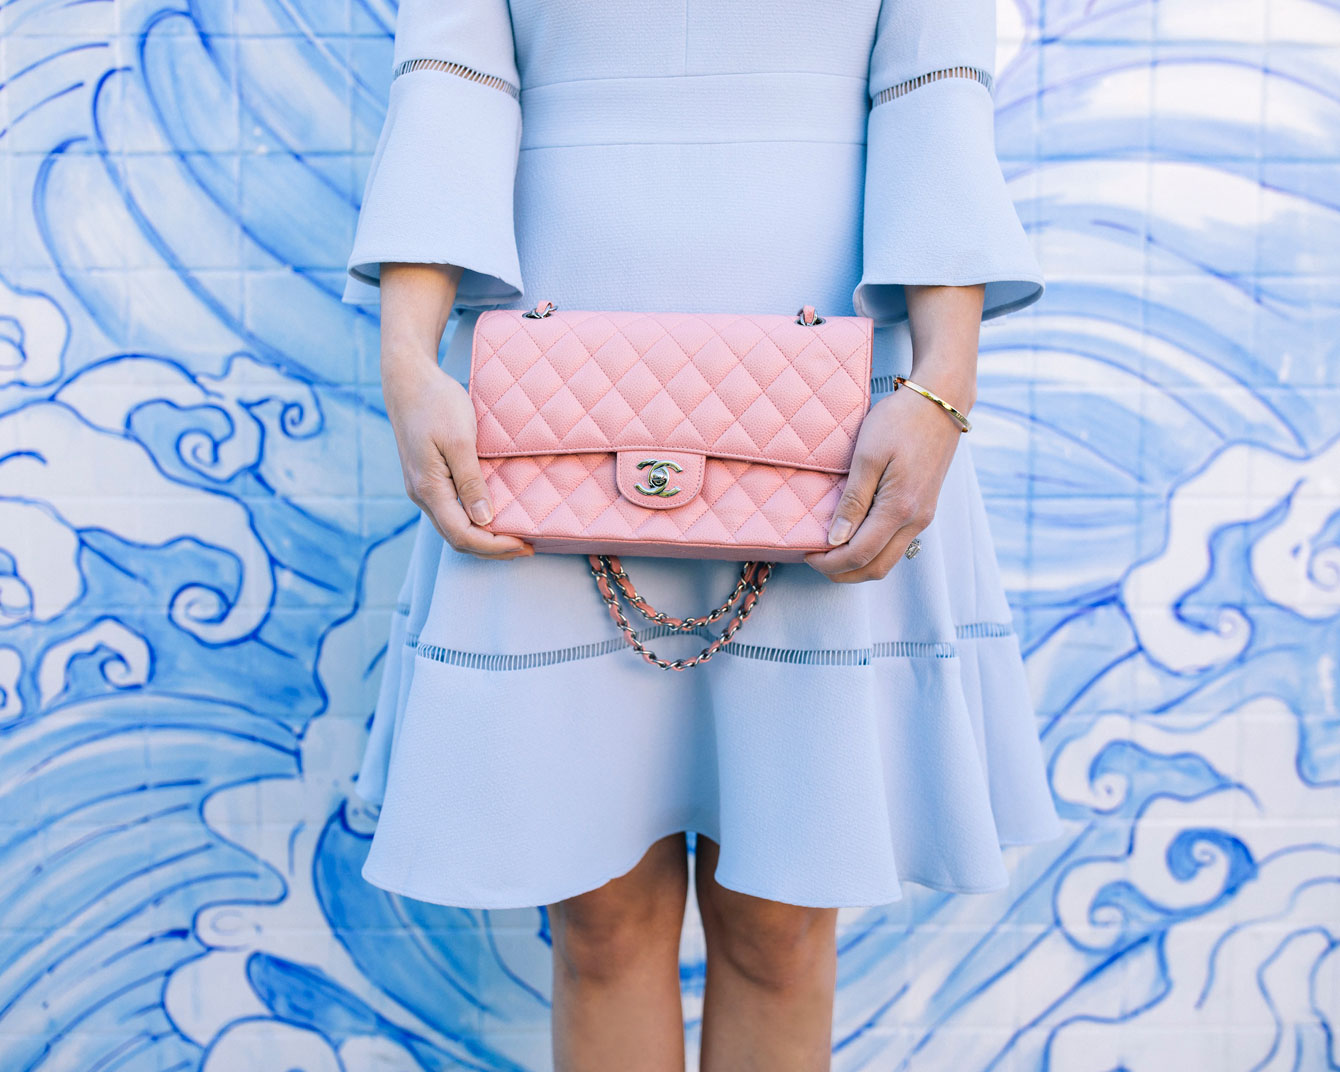 Pink Chanel Classic Flap Bag